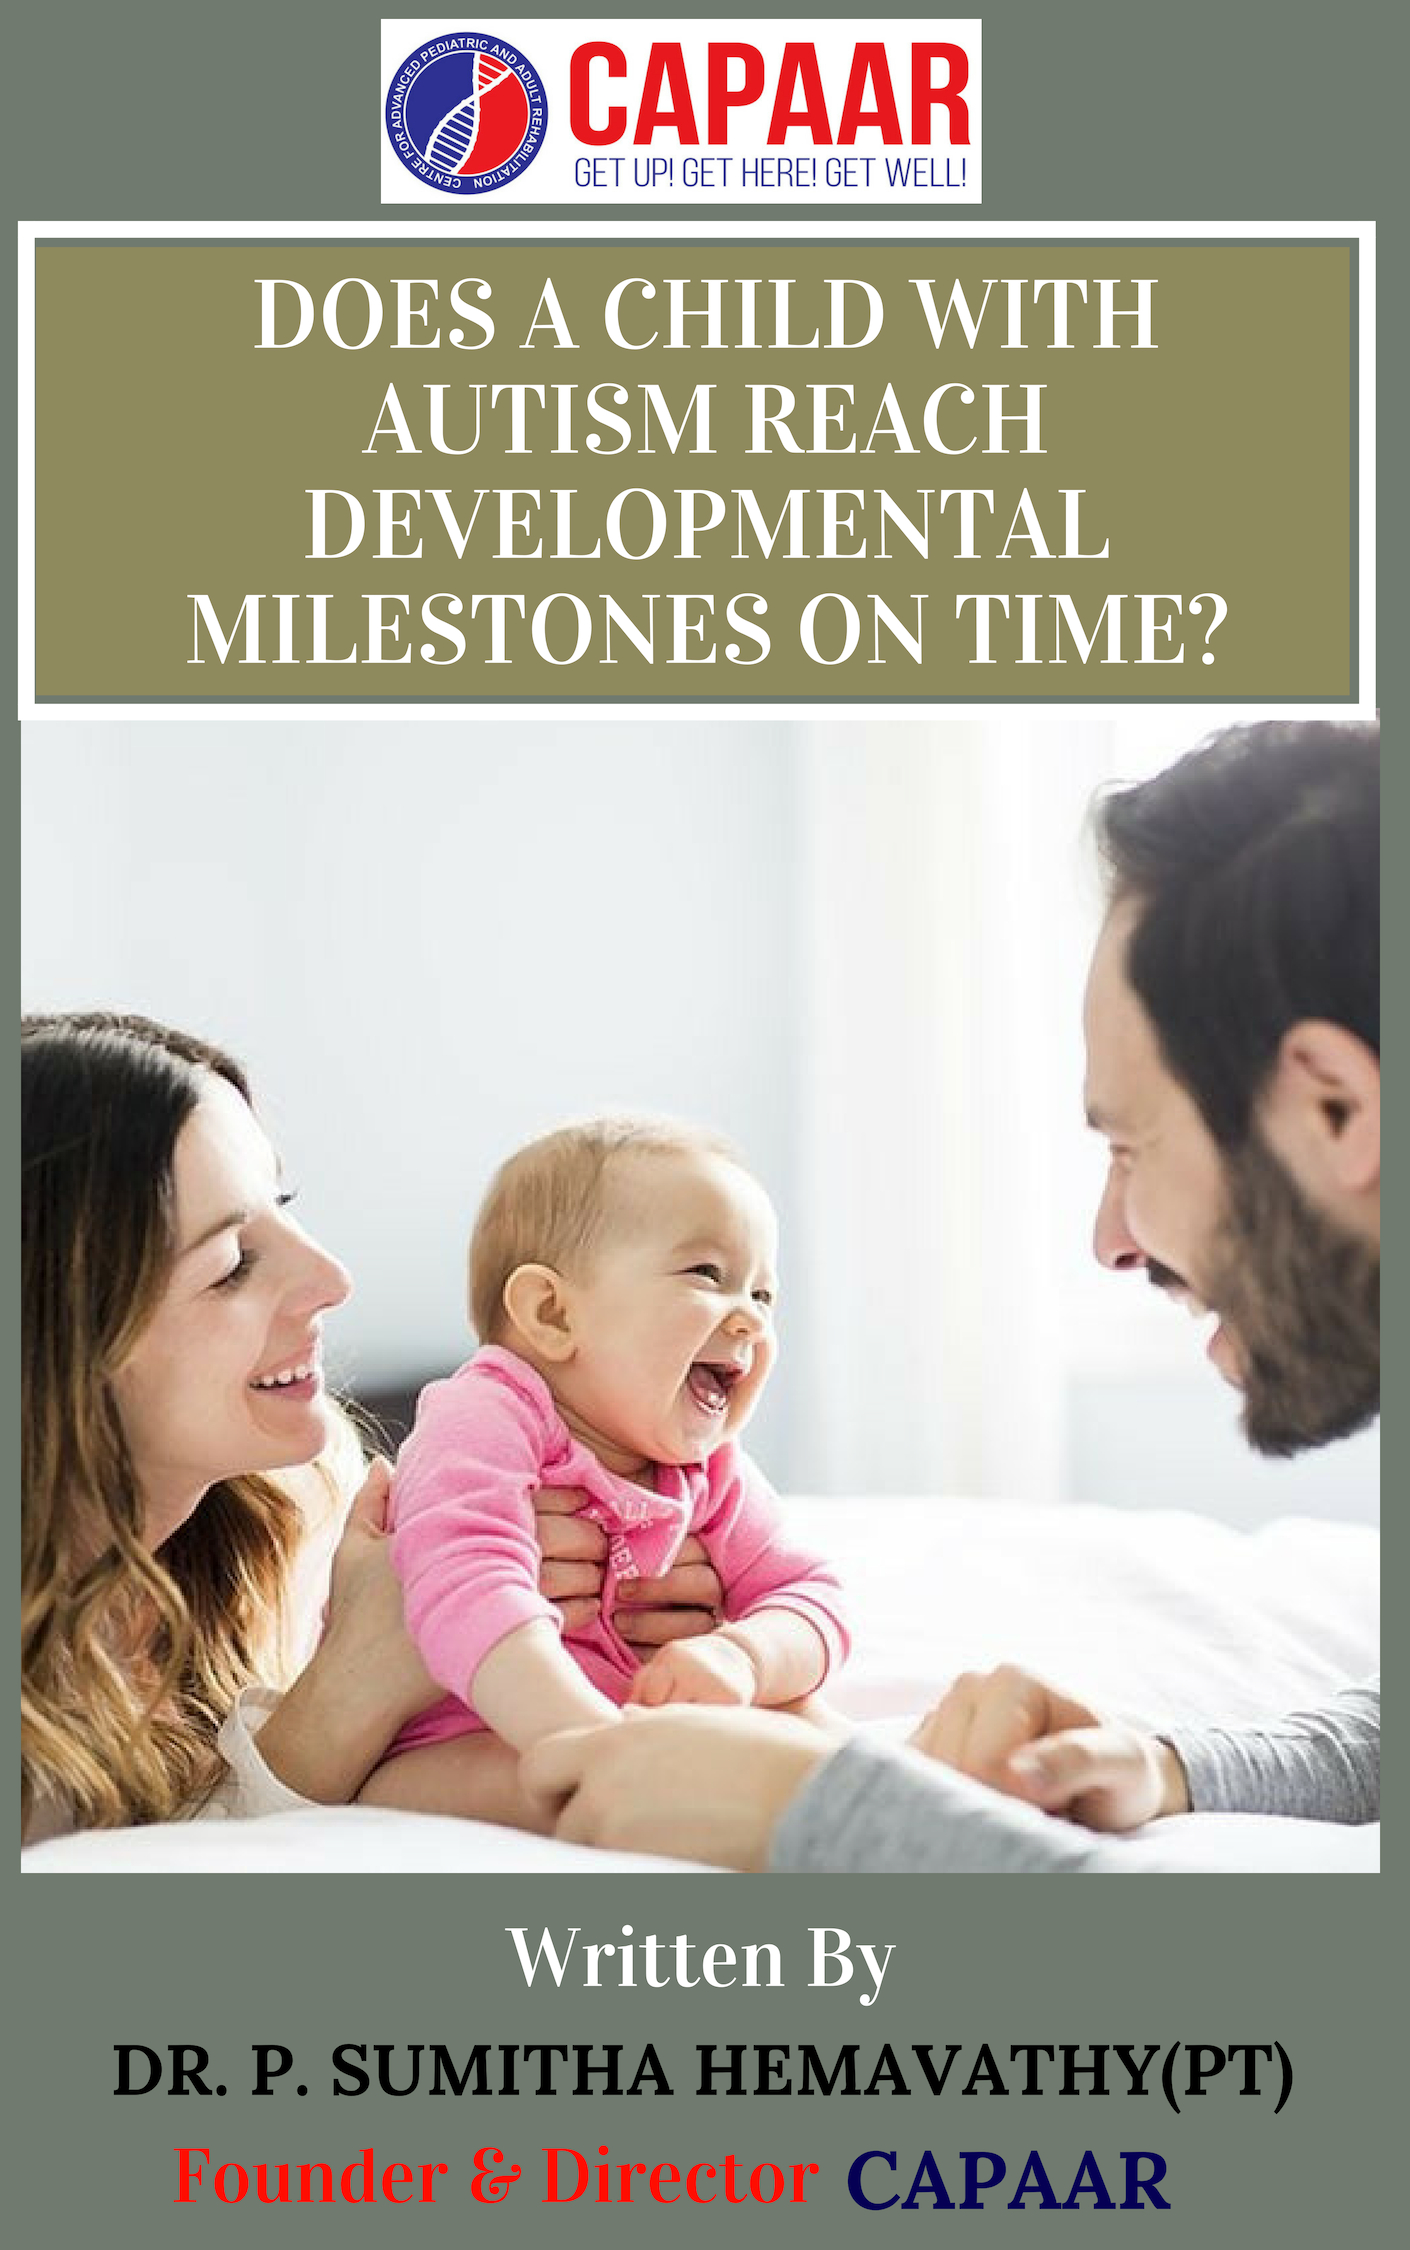 Developmental Milestones on Time | Best Centre for Autism Treatment Bangalore